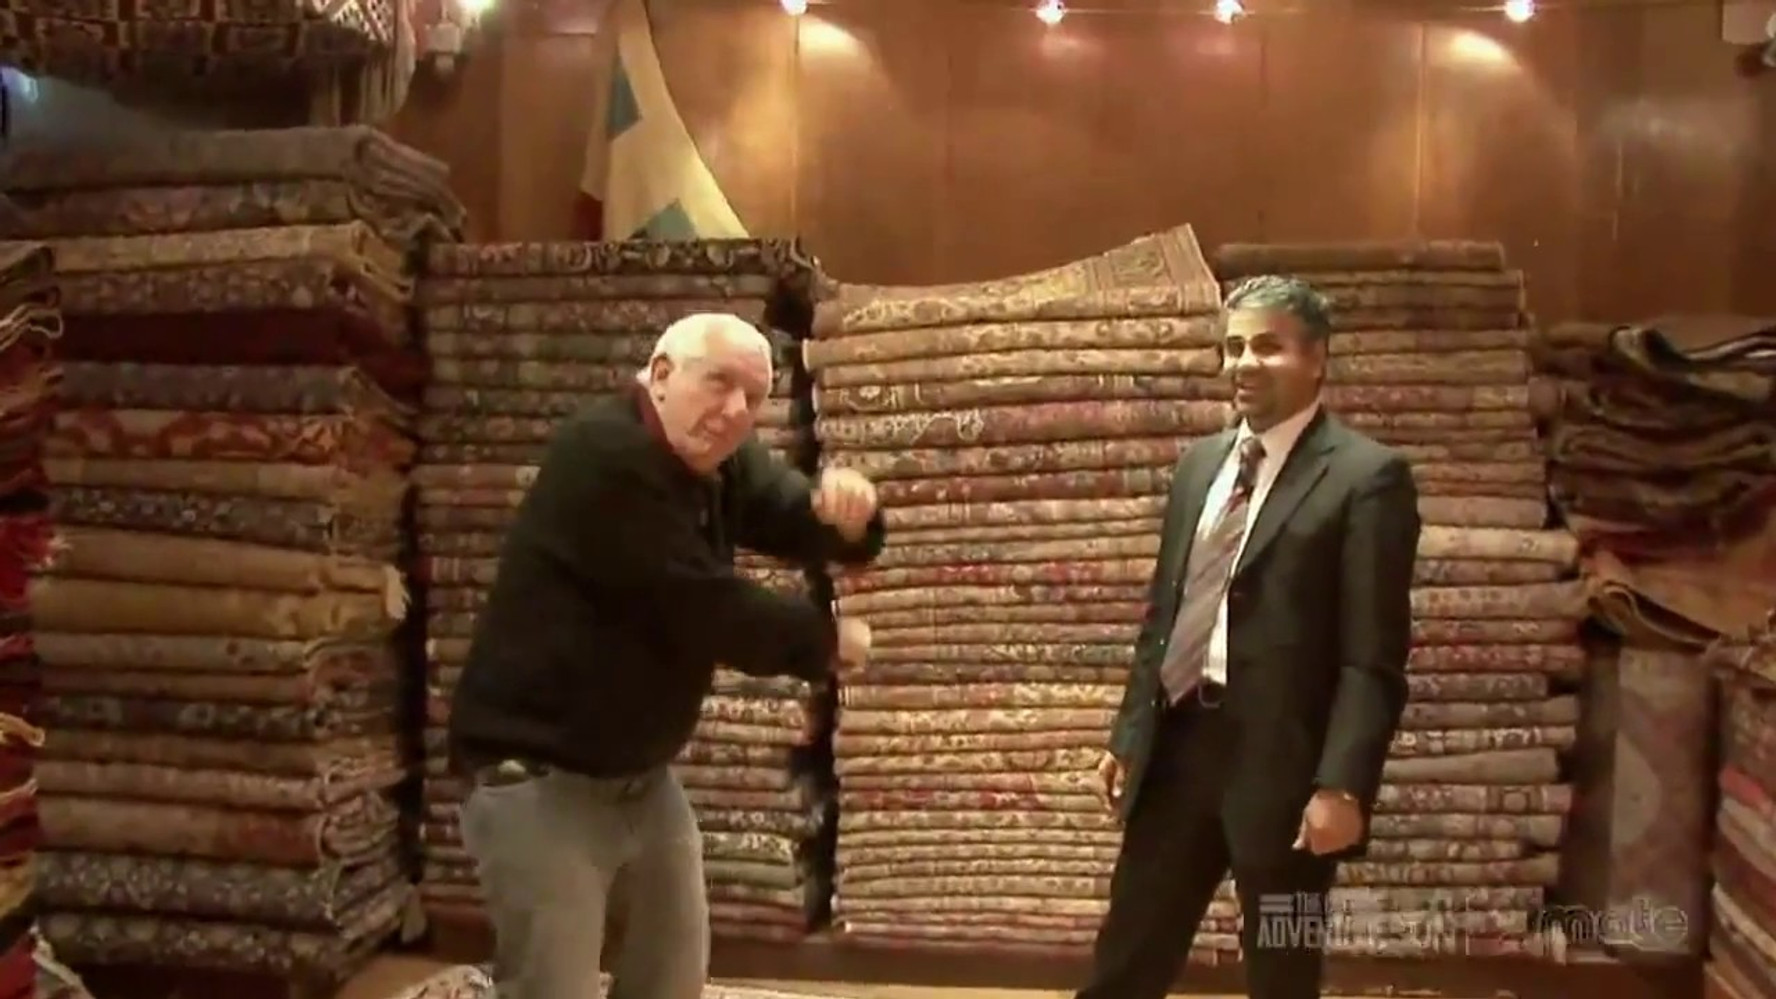 World Travel Channel visits Hakan Evin Rug Store in Grand Bazaar, Istanbul